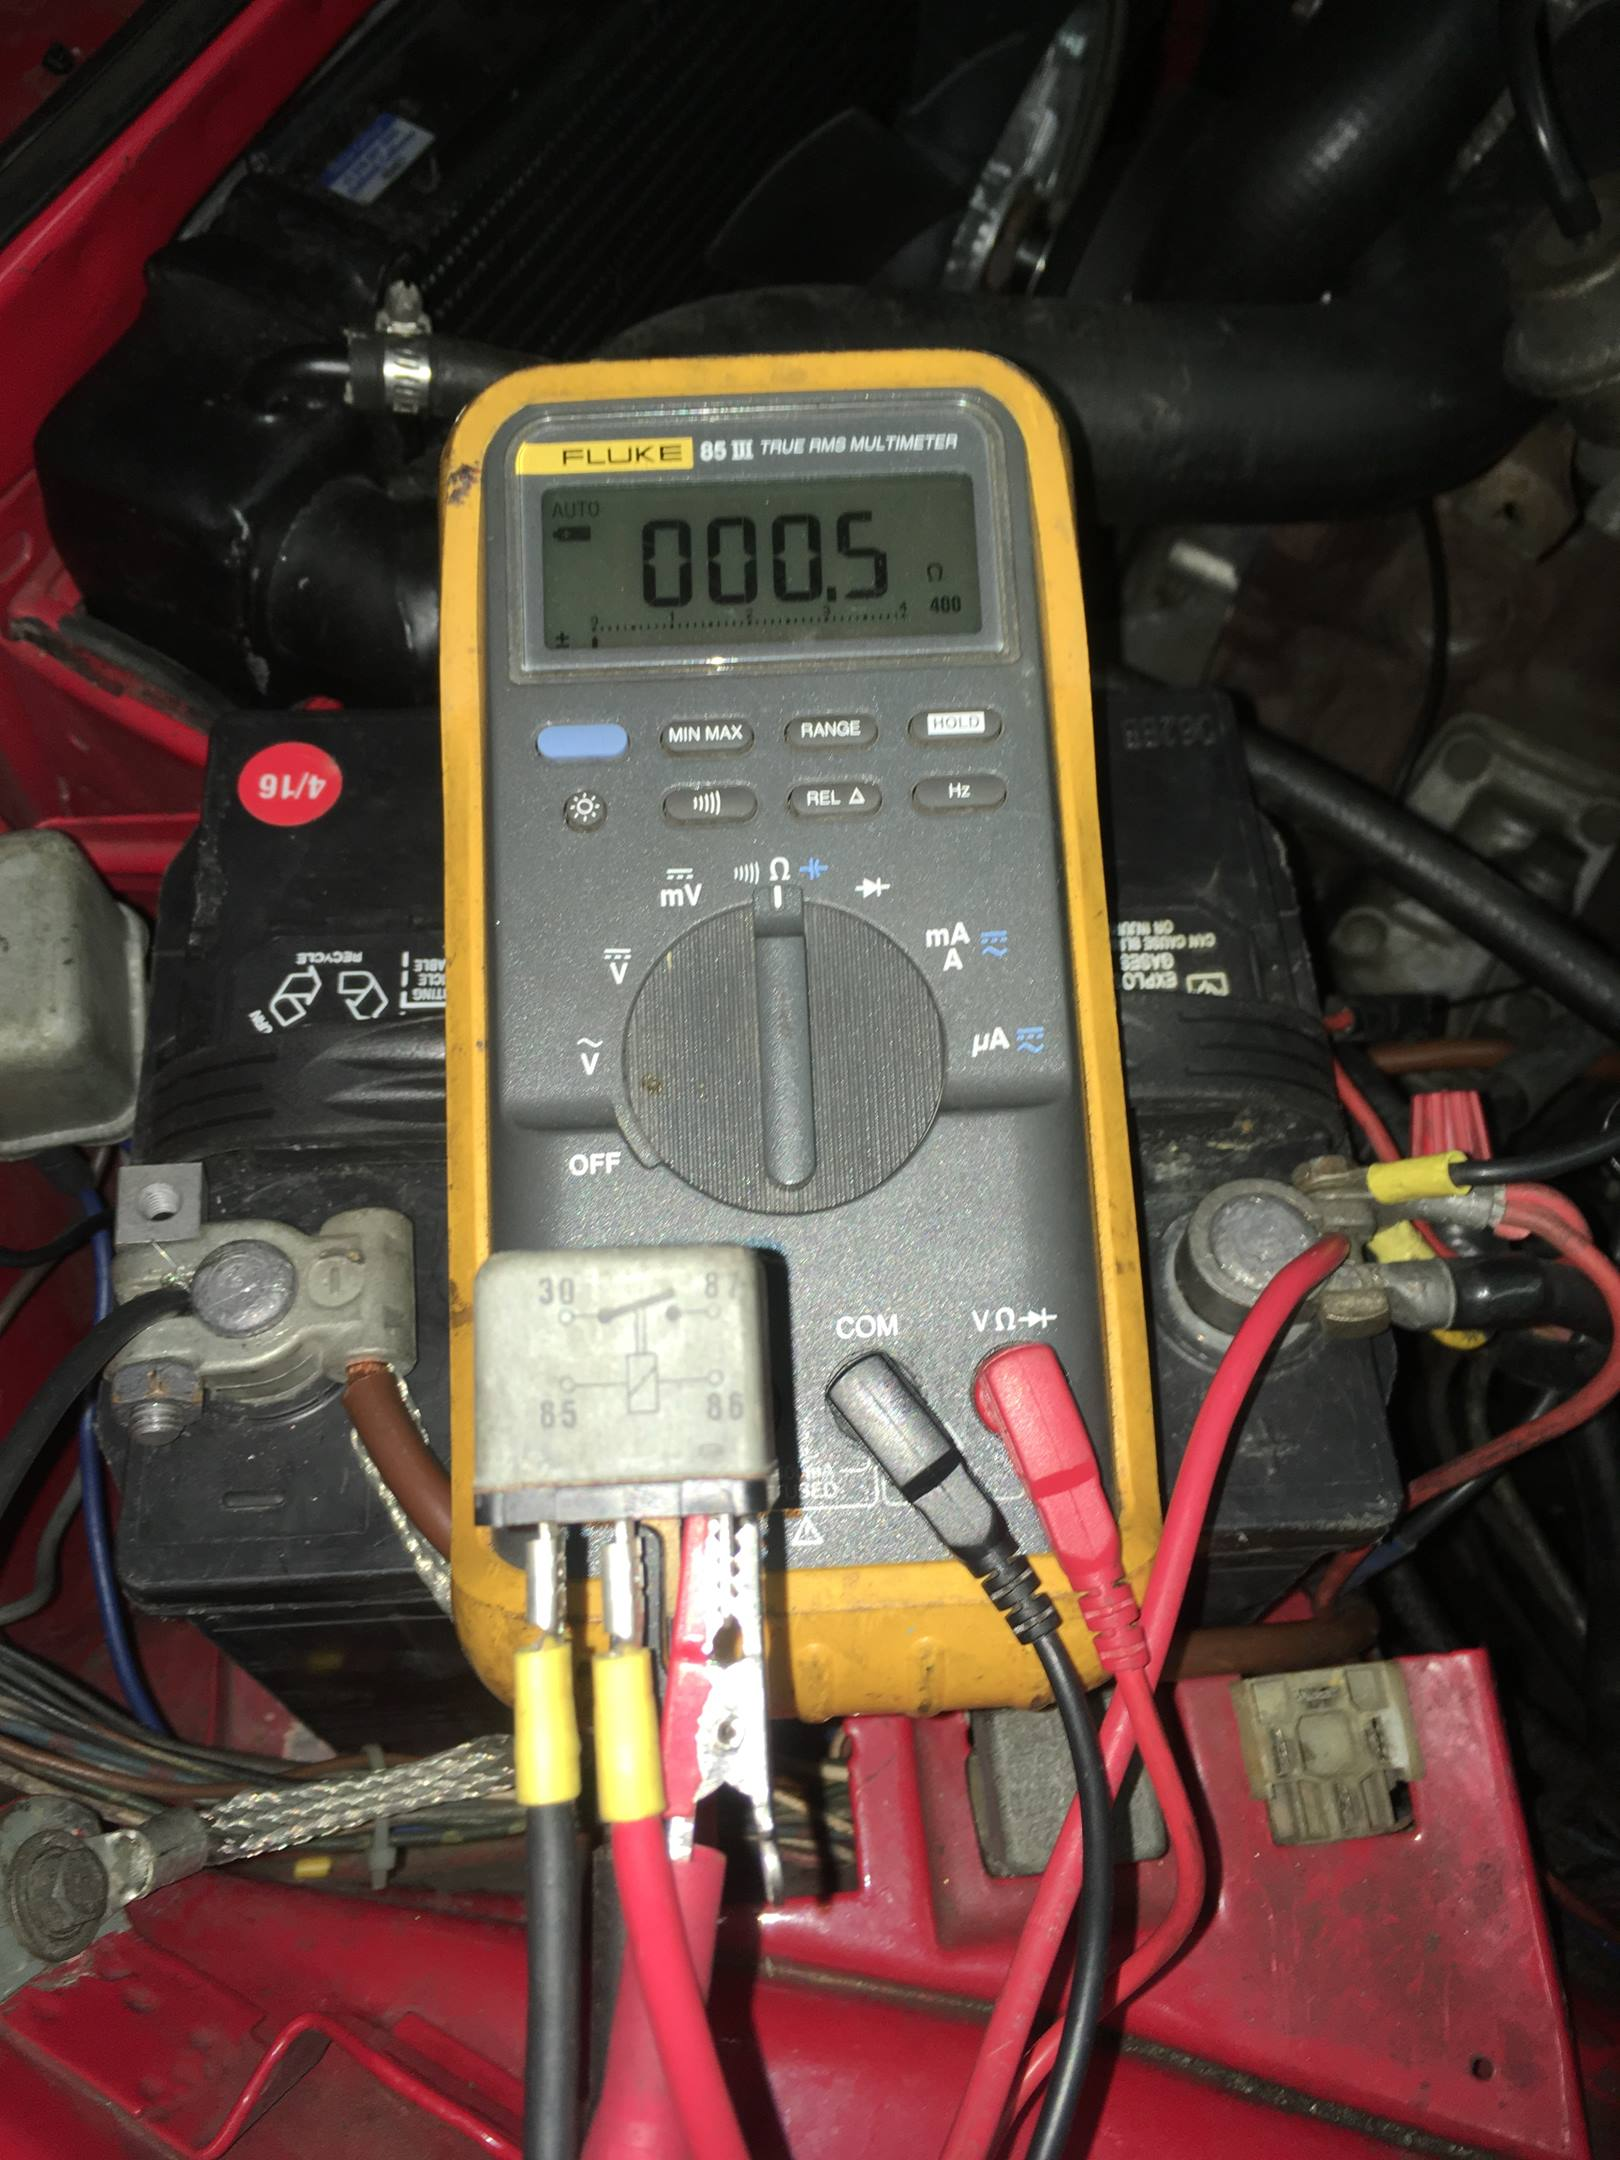 With 86 and 85 connected to the battery, there should be—and is—conductivity between 87 and 30. This relay passes the test.